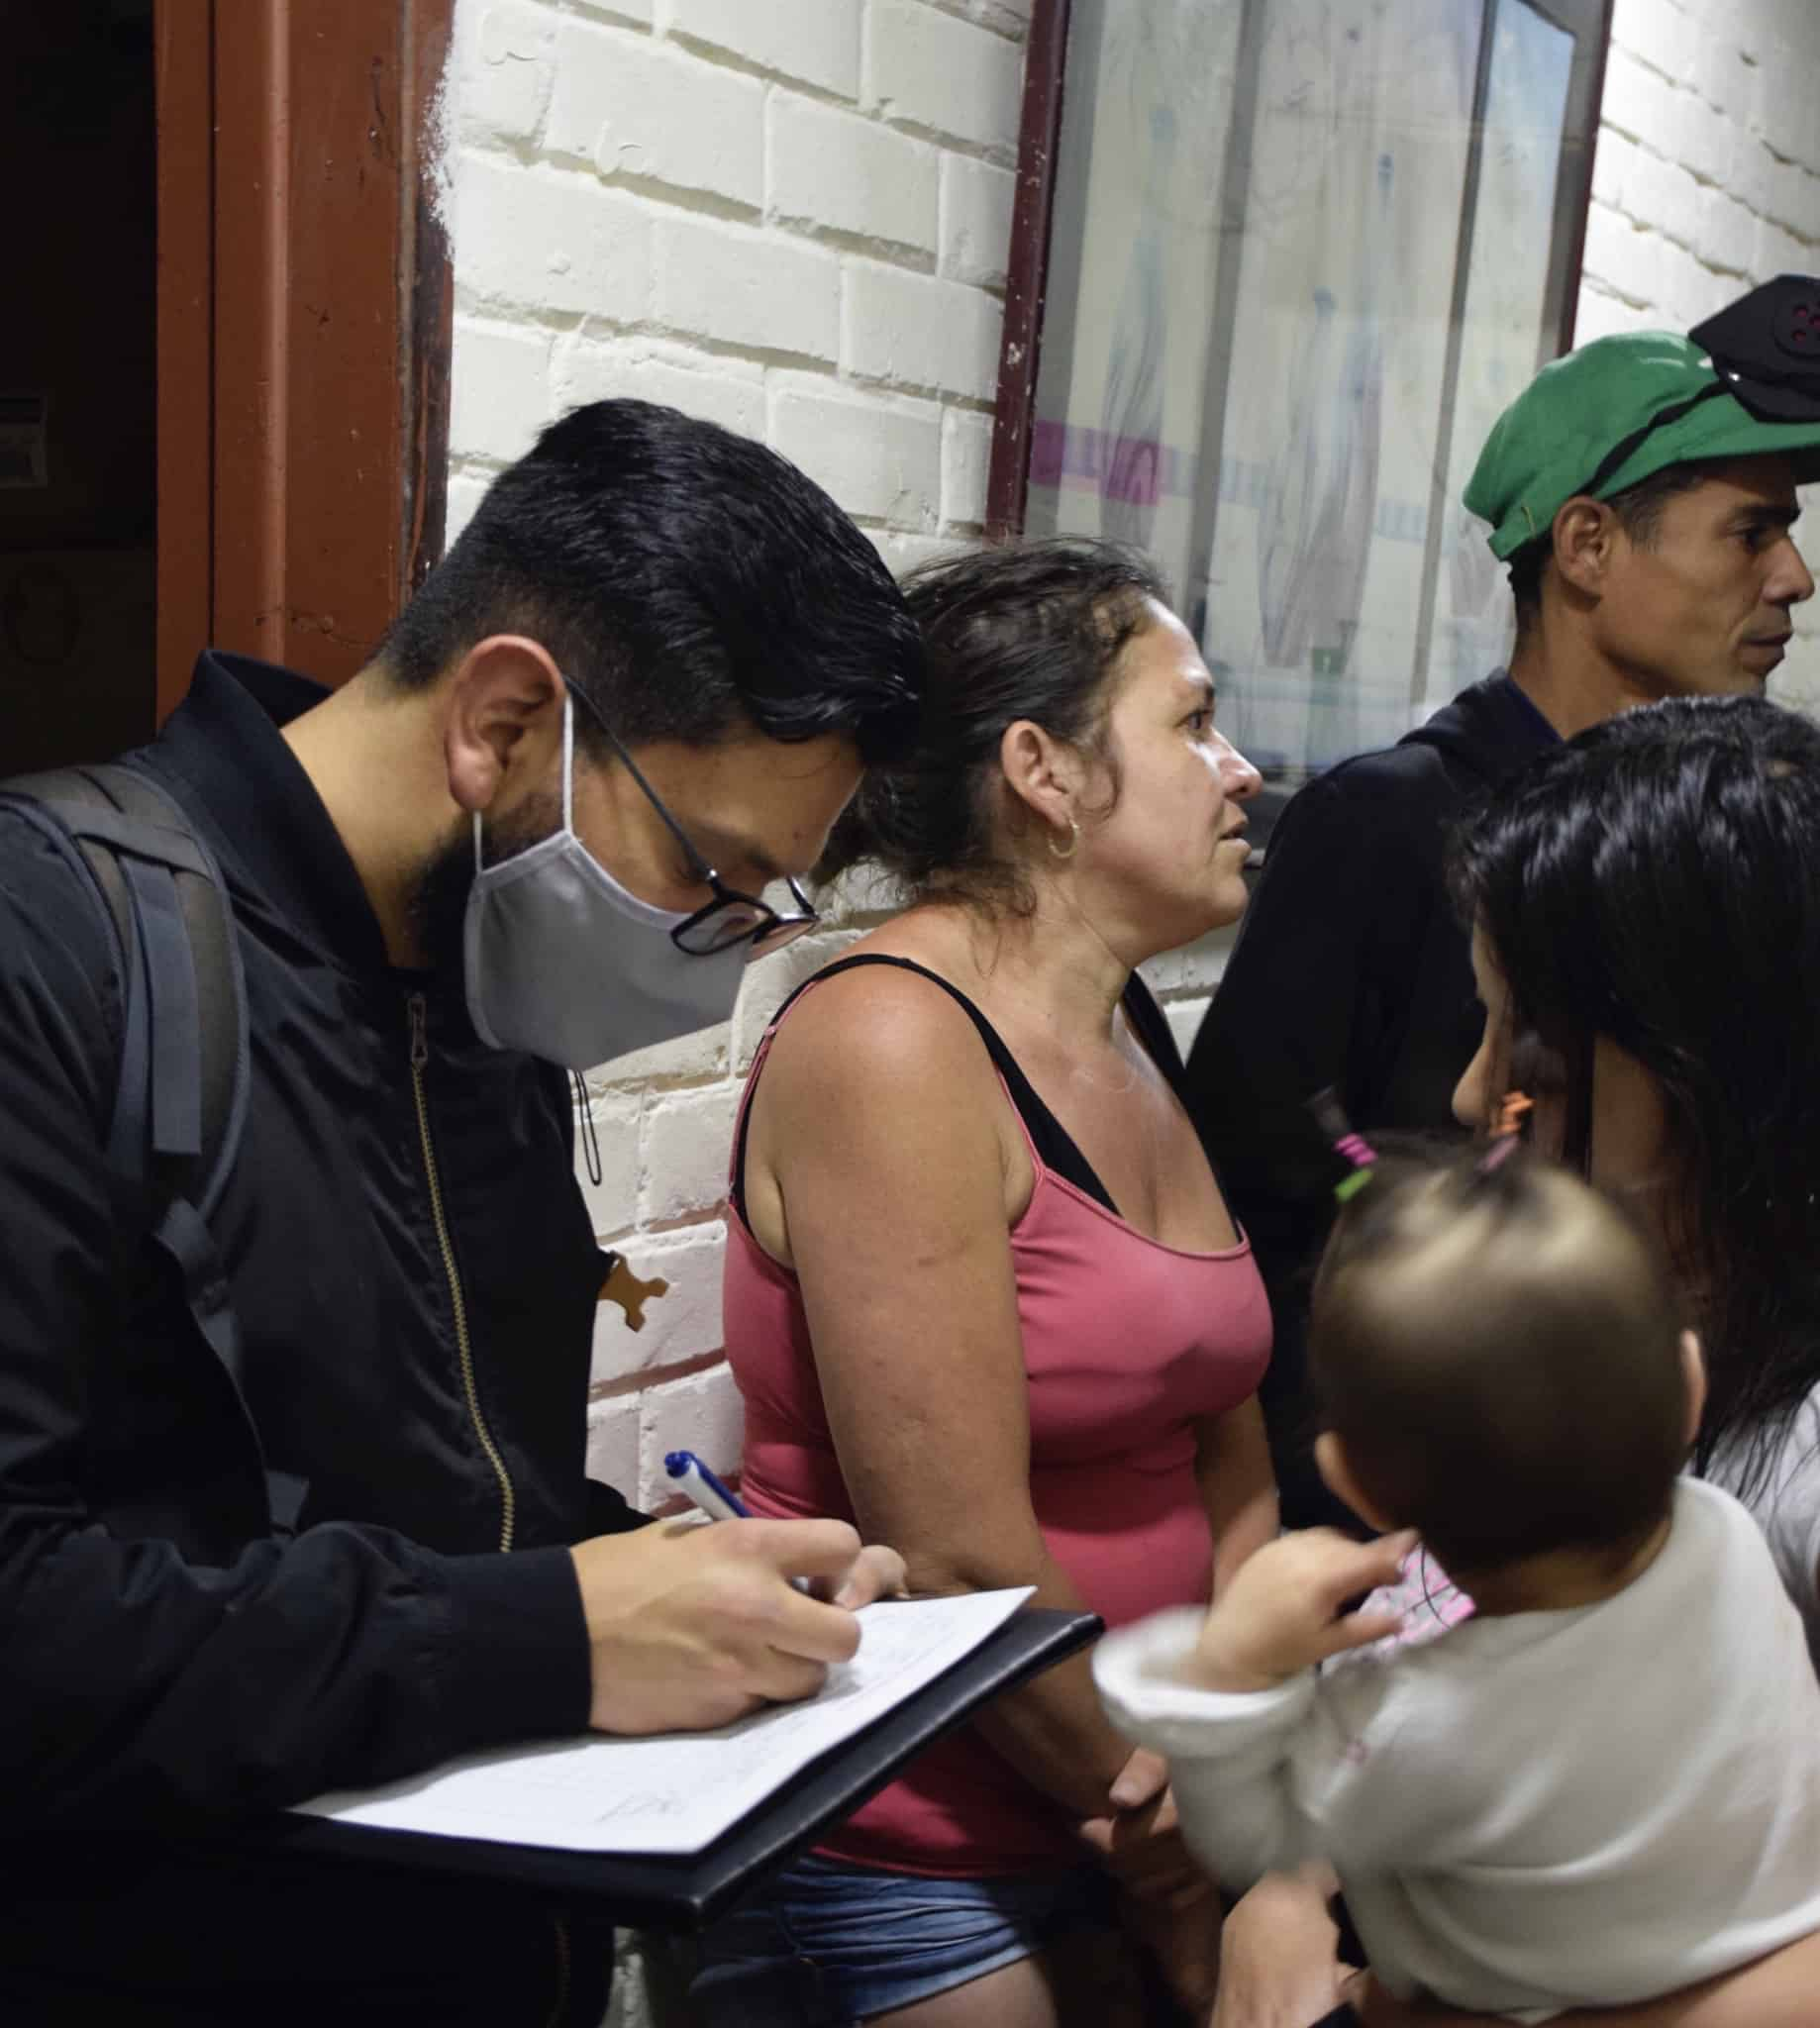 Solidarity Across Borders: Can You Help A Community In Need?